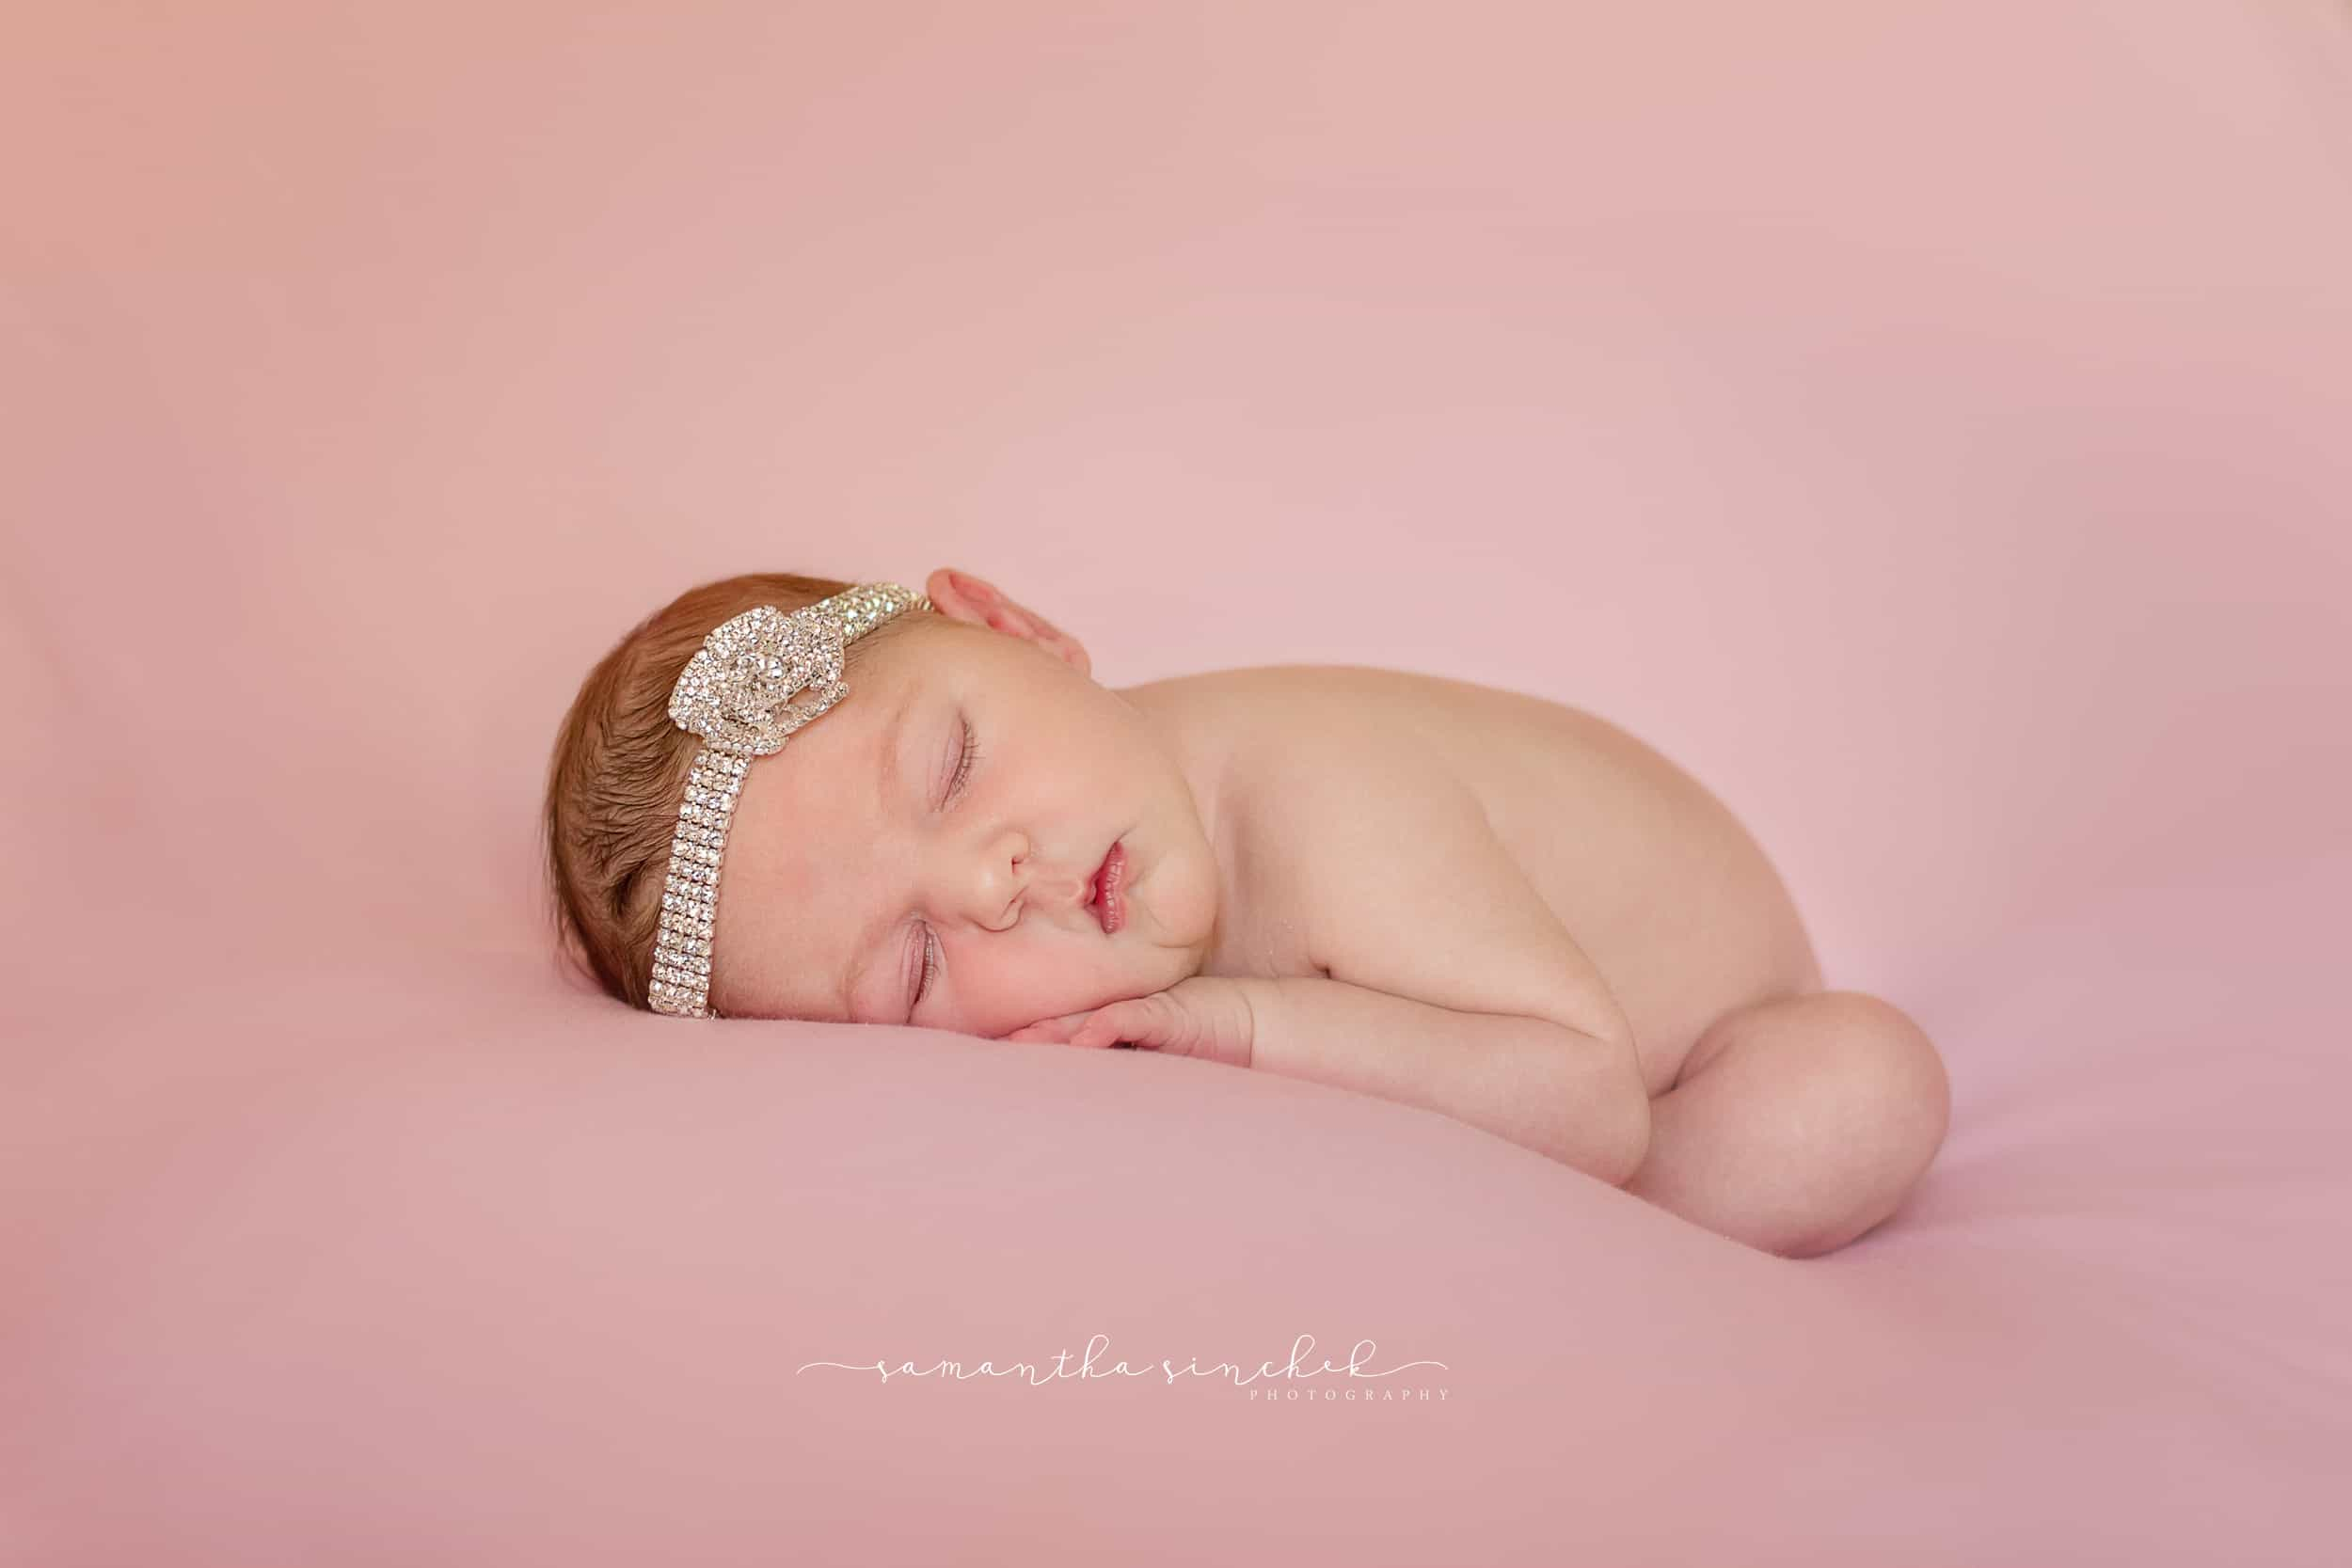 Cincinnati newborn sleeps wearing diamond headband